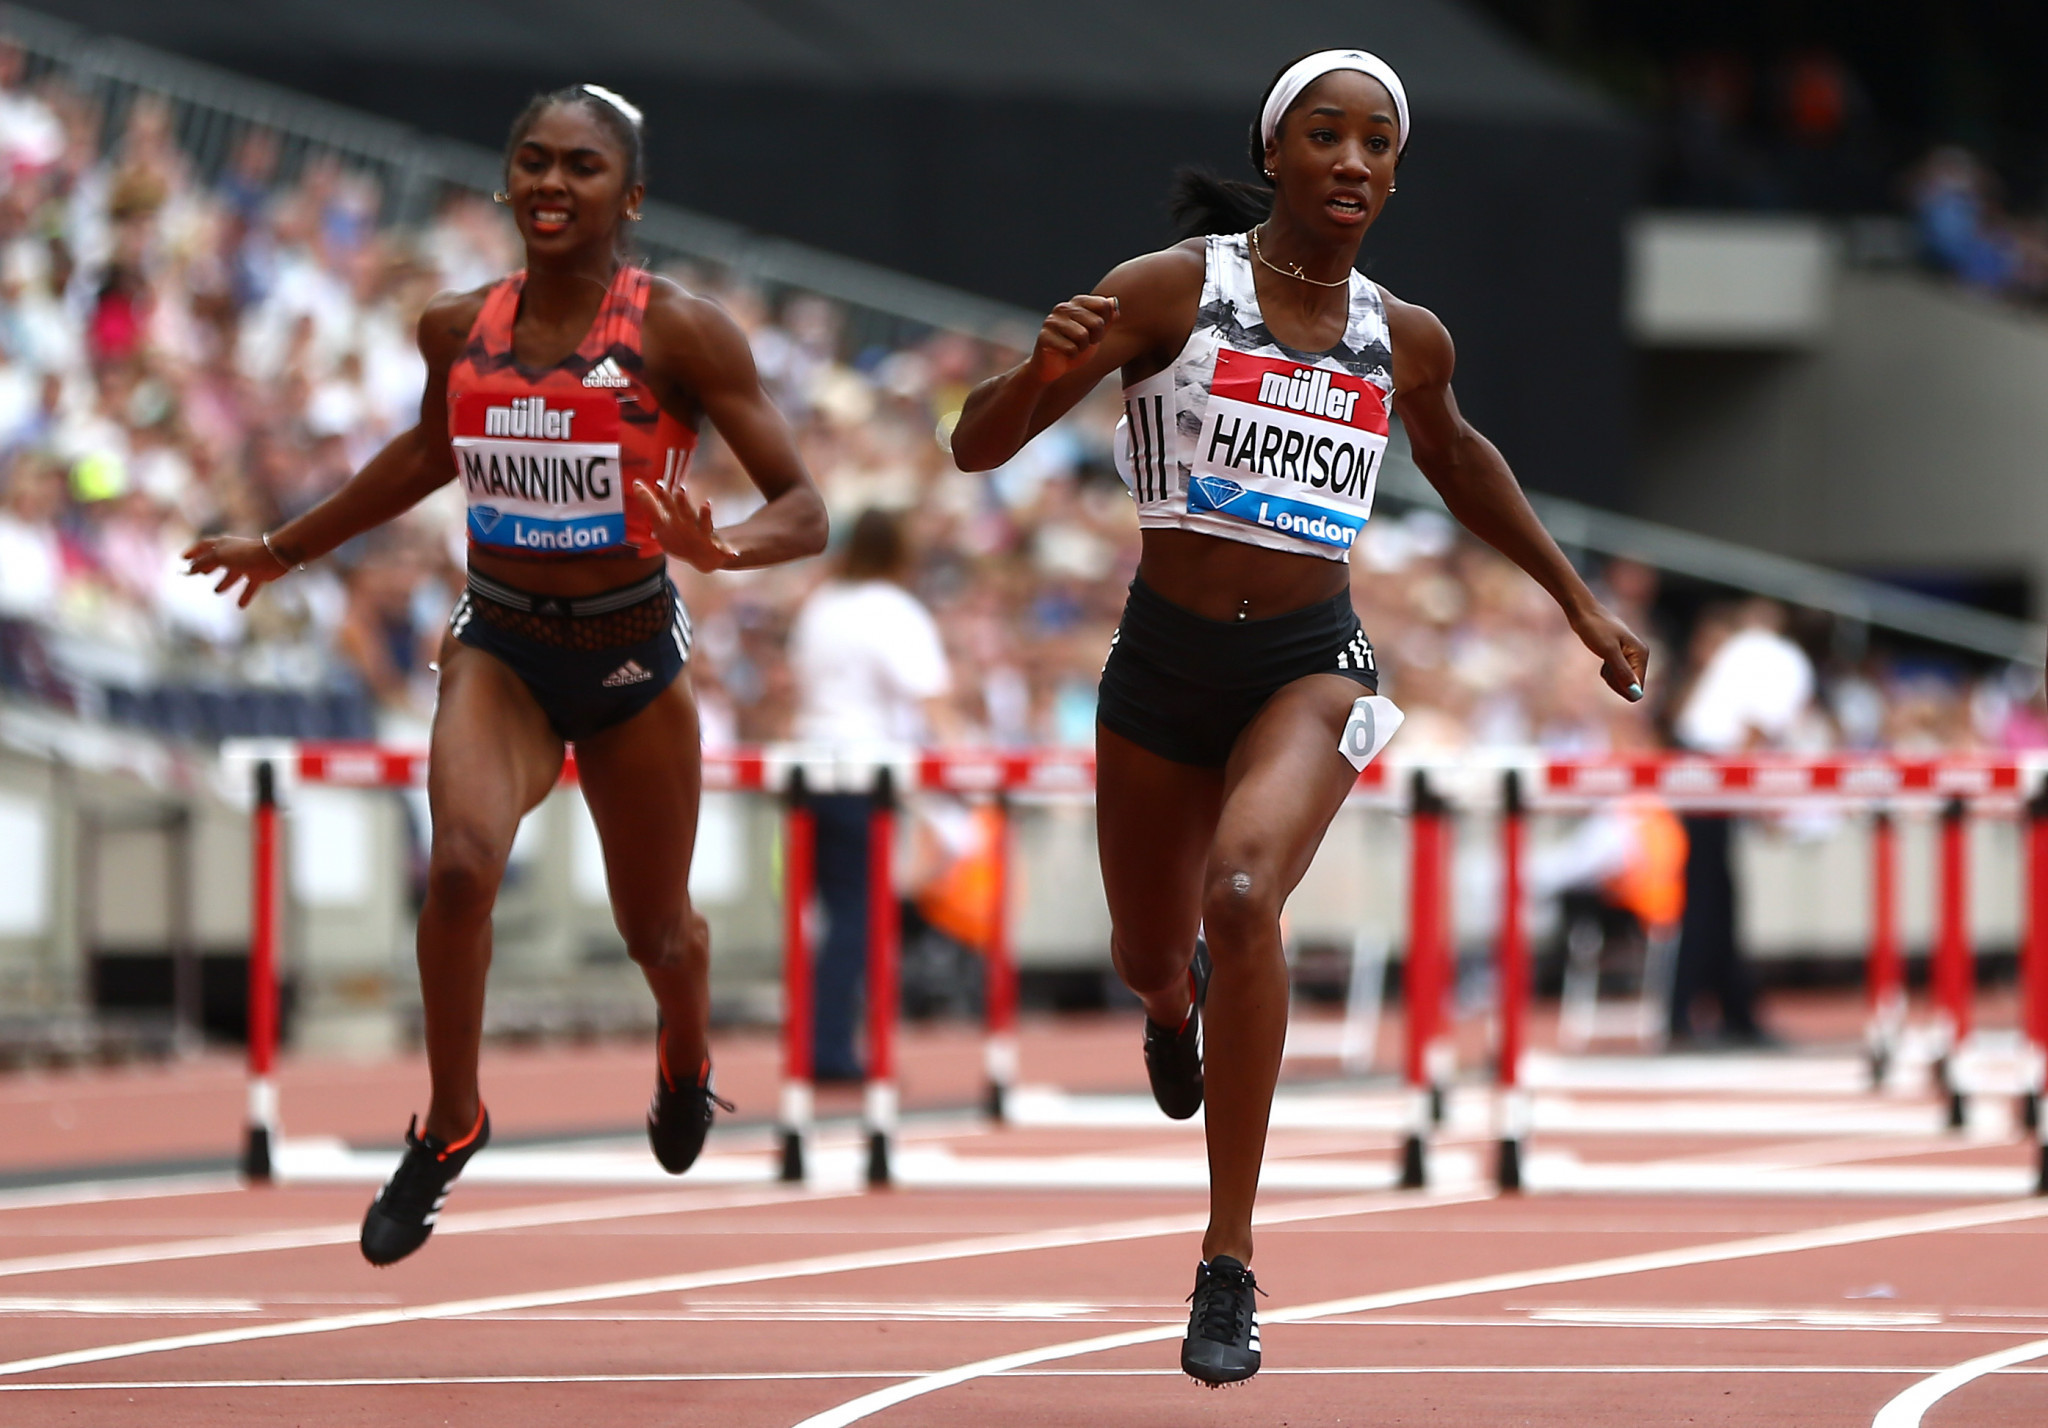 Women's 100m hurdles world recorder holder Kendra Harrison is set to lead the American team at the  NACAC Championships at the Varisty Stadium in Toronto ©Getty Images